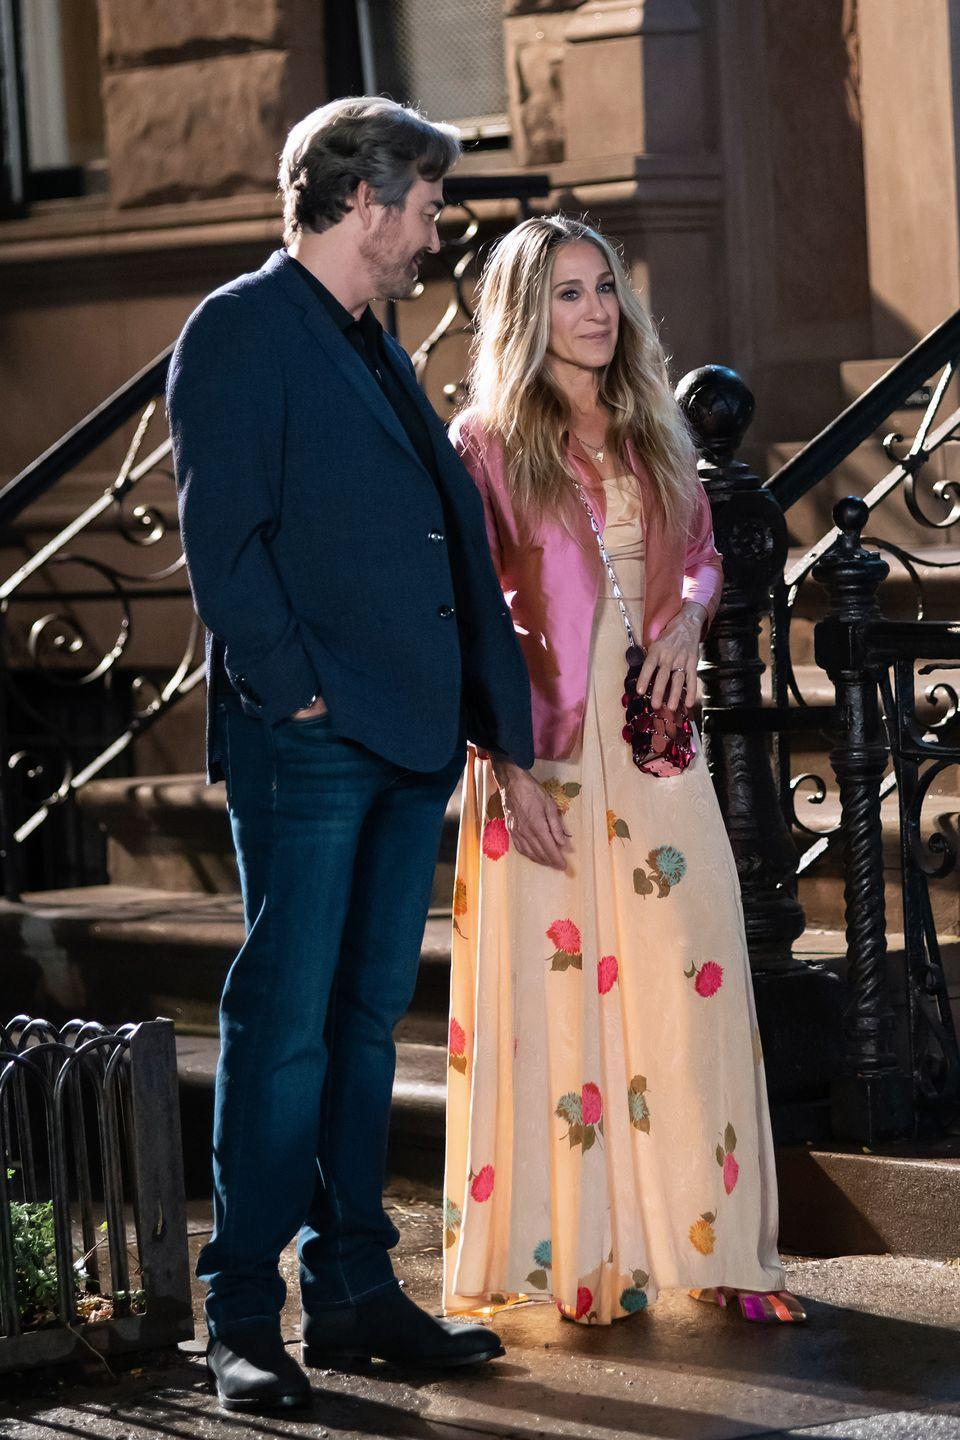 <p>In character as Carrie, the star wore a cream-coloured dress decorated with embroidered flowers in different colours, styled with a pink satin blazer and sequinned pink bag. </p><p>SJP's team accessorised the evening ensemble with multicoloured pointed-toe heels.</p>